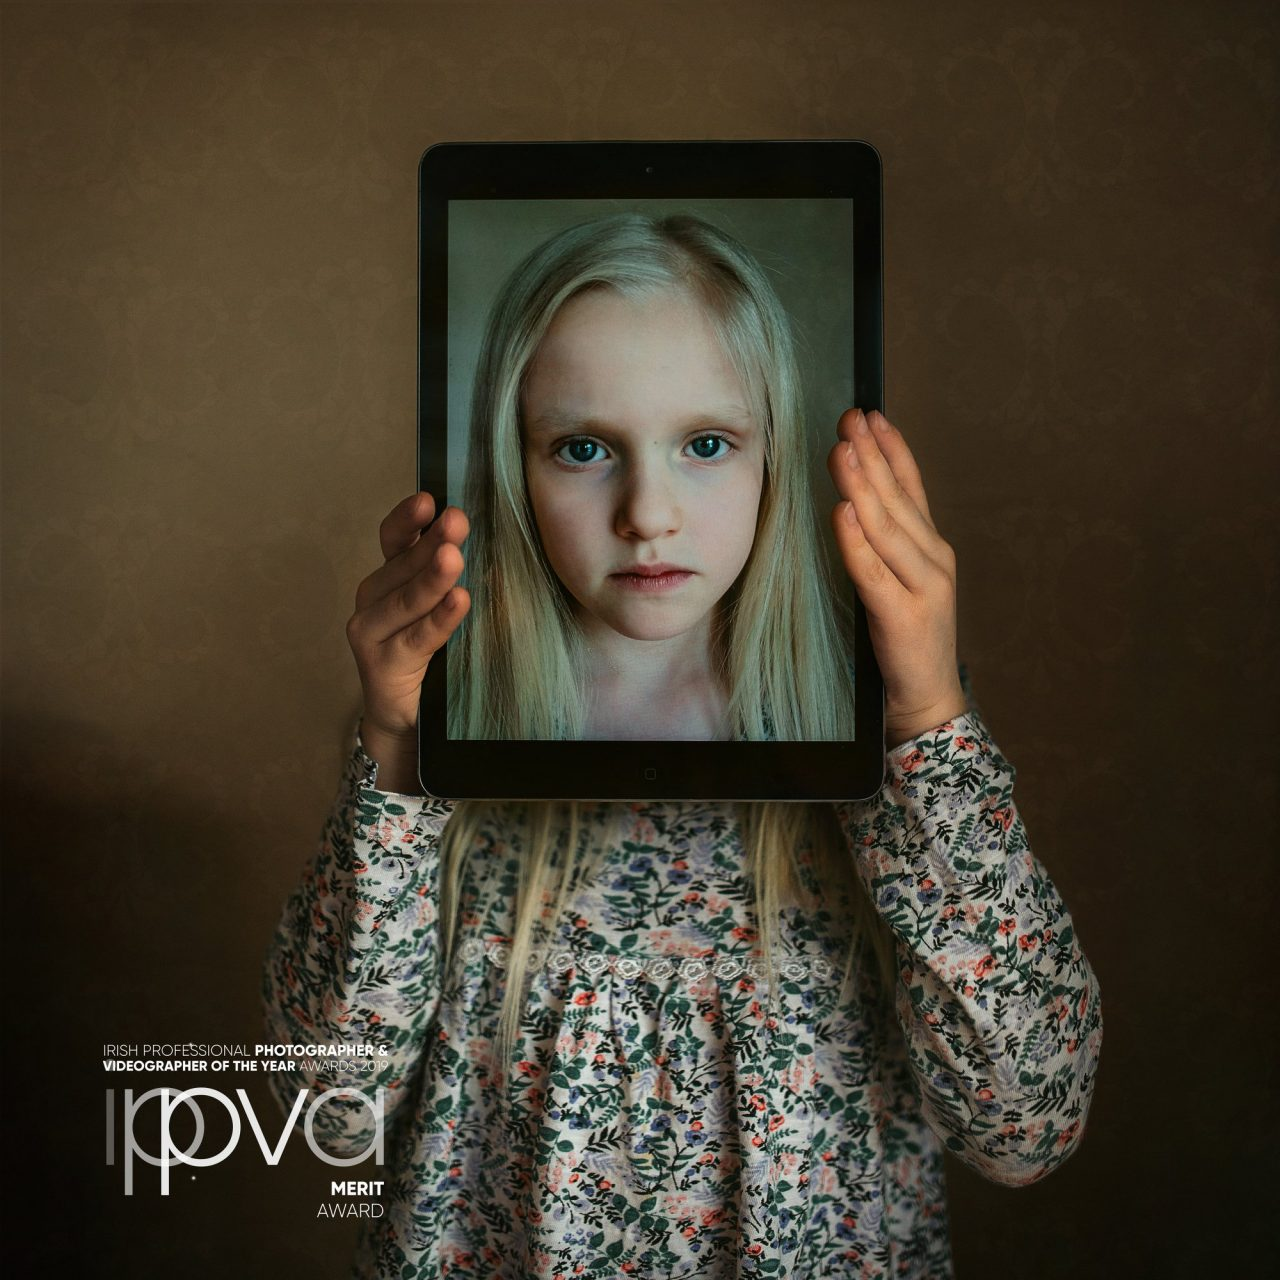 A girl holding a tablet in front of her face. Photo by Greta Do.